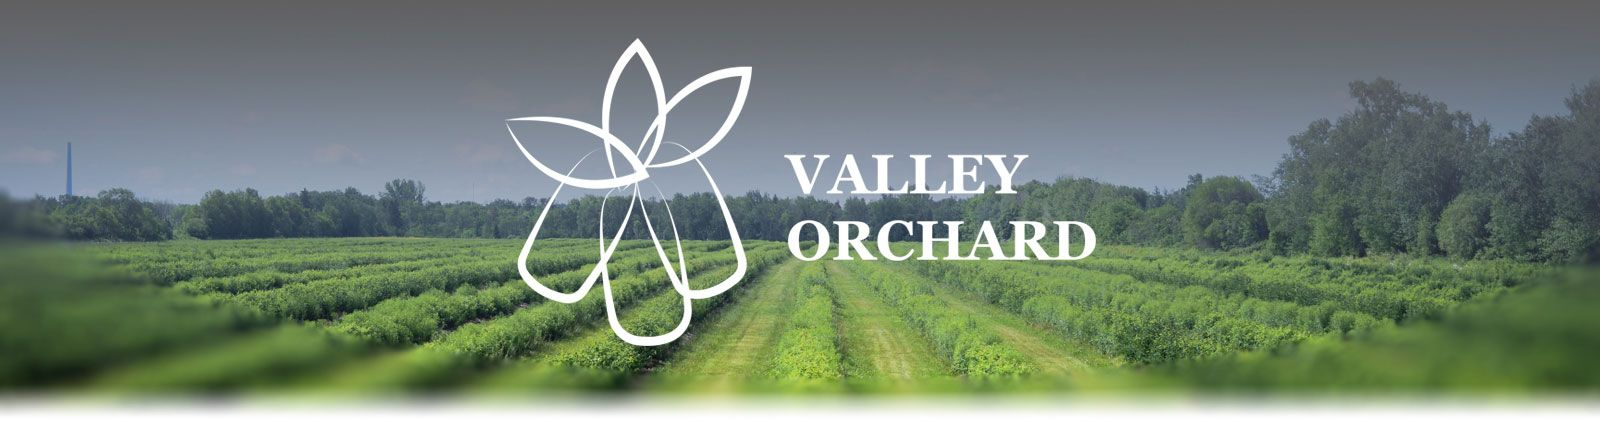 Valley Orchard